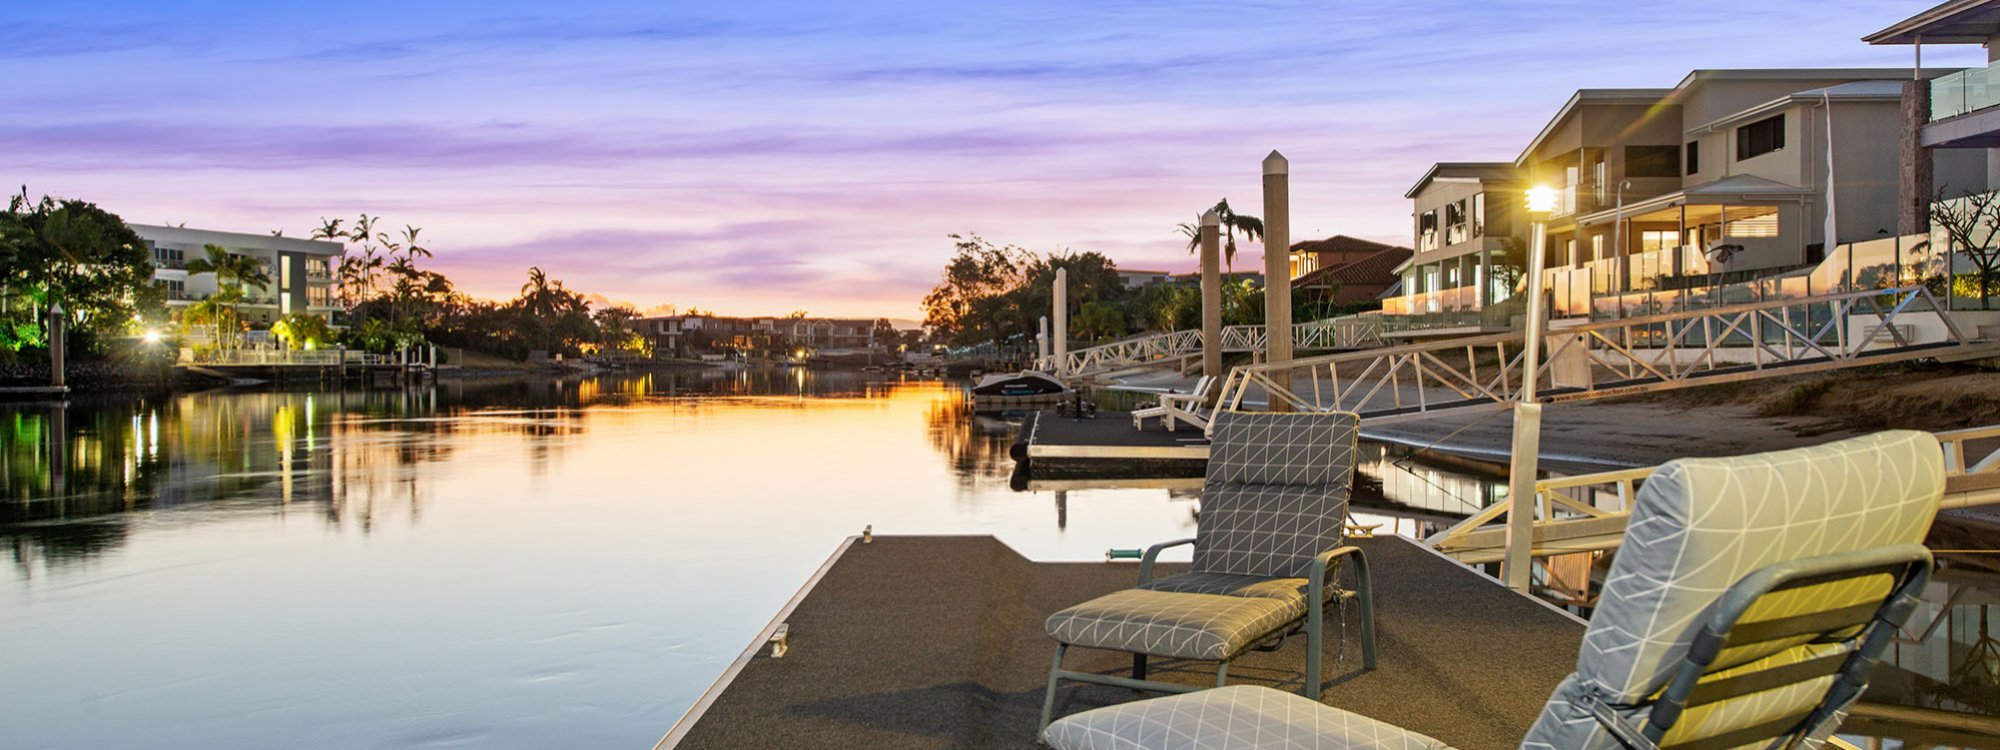 Casa Grande - Broadbeach Waters - Canal Living